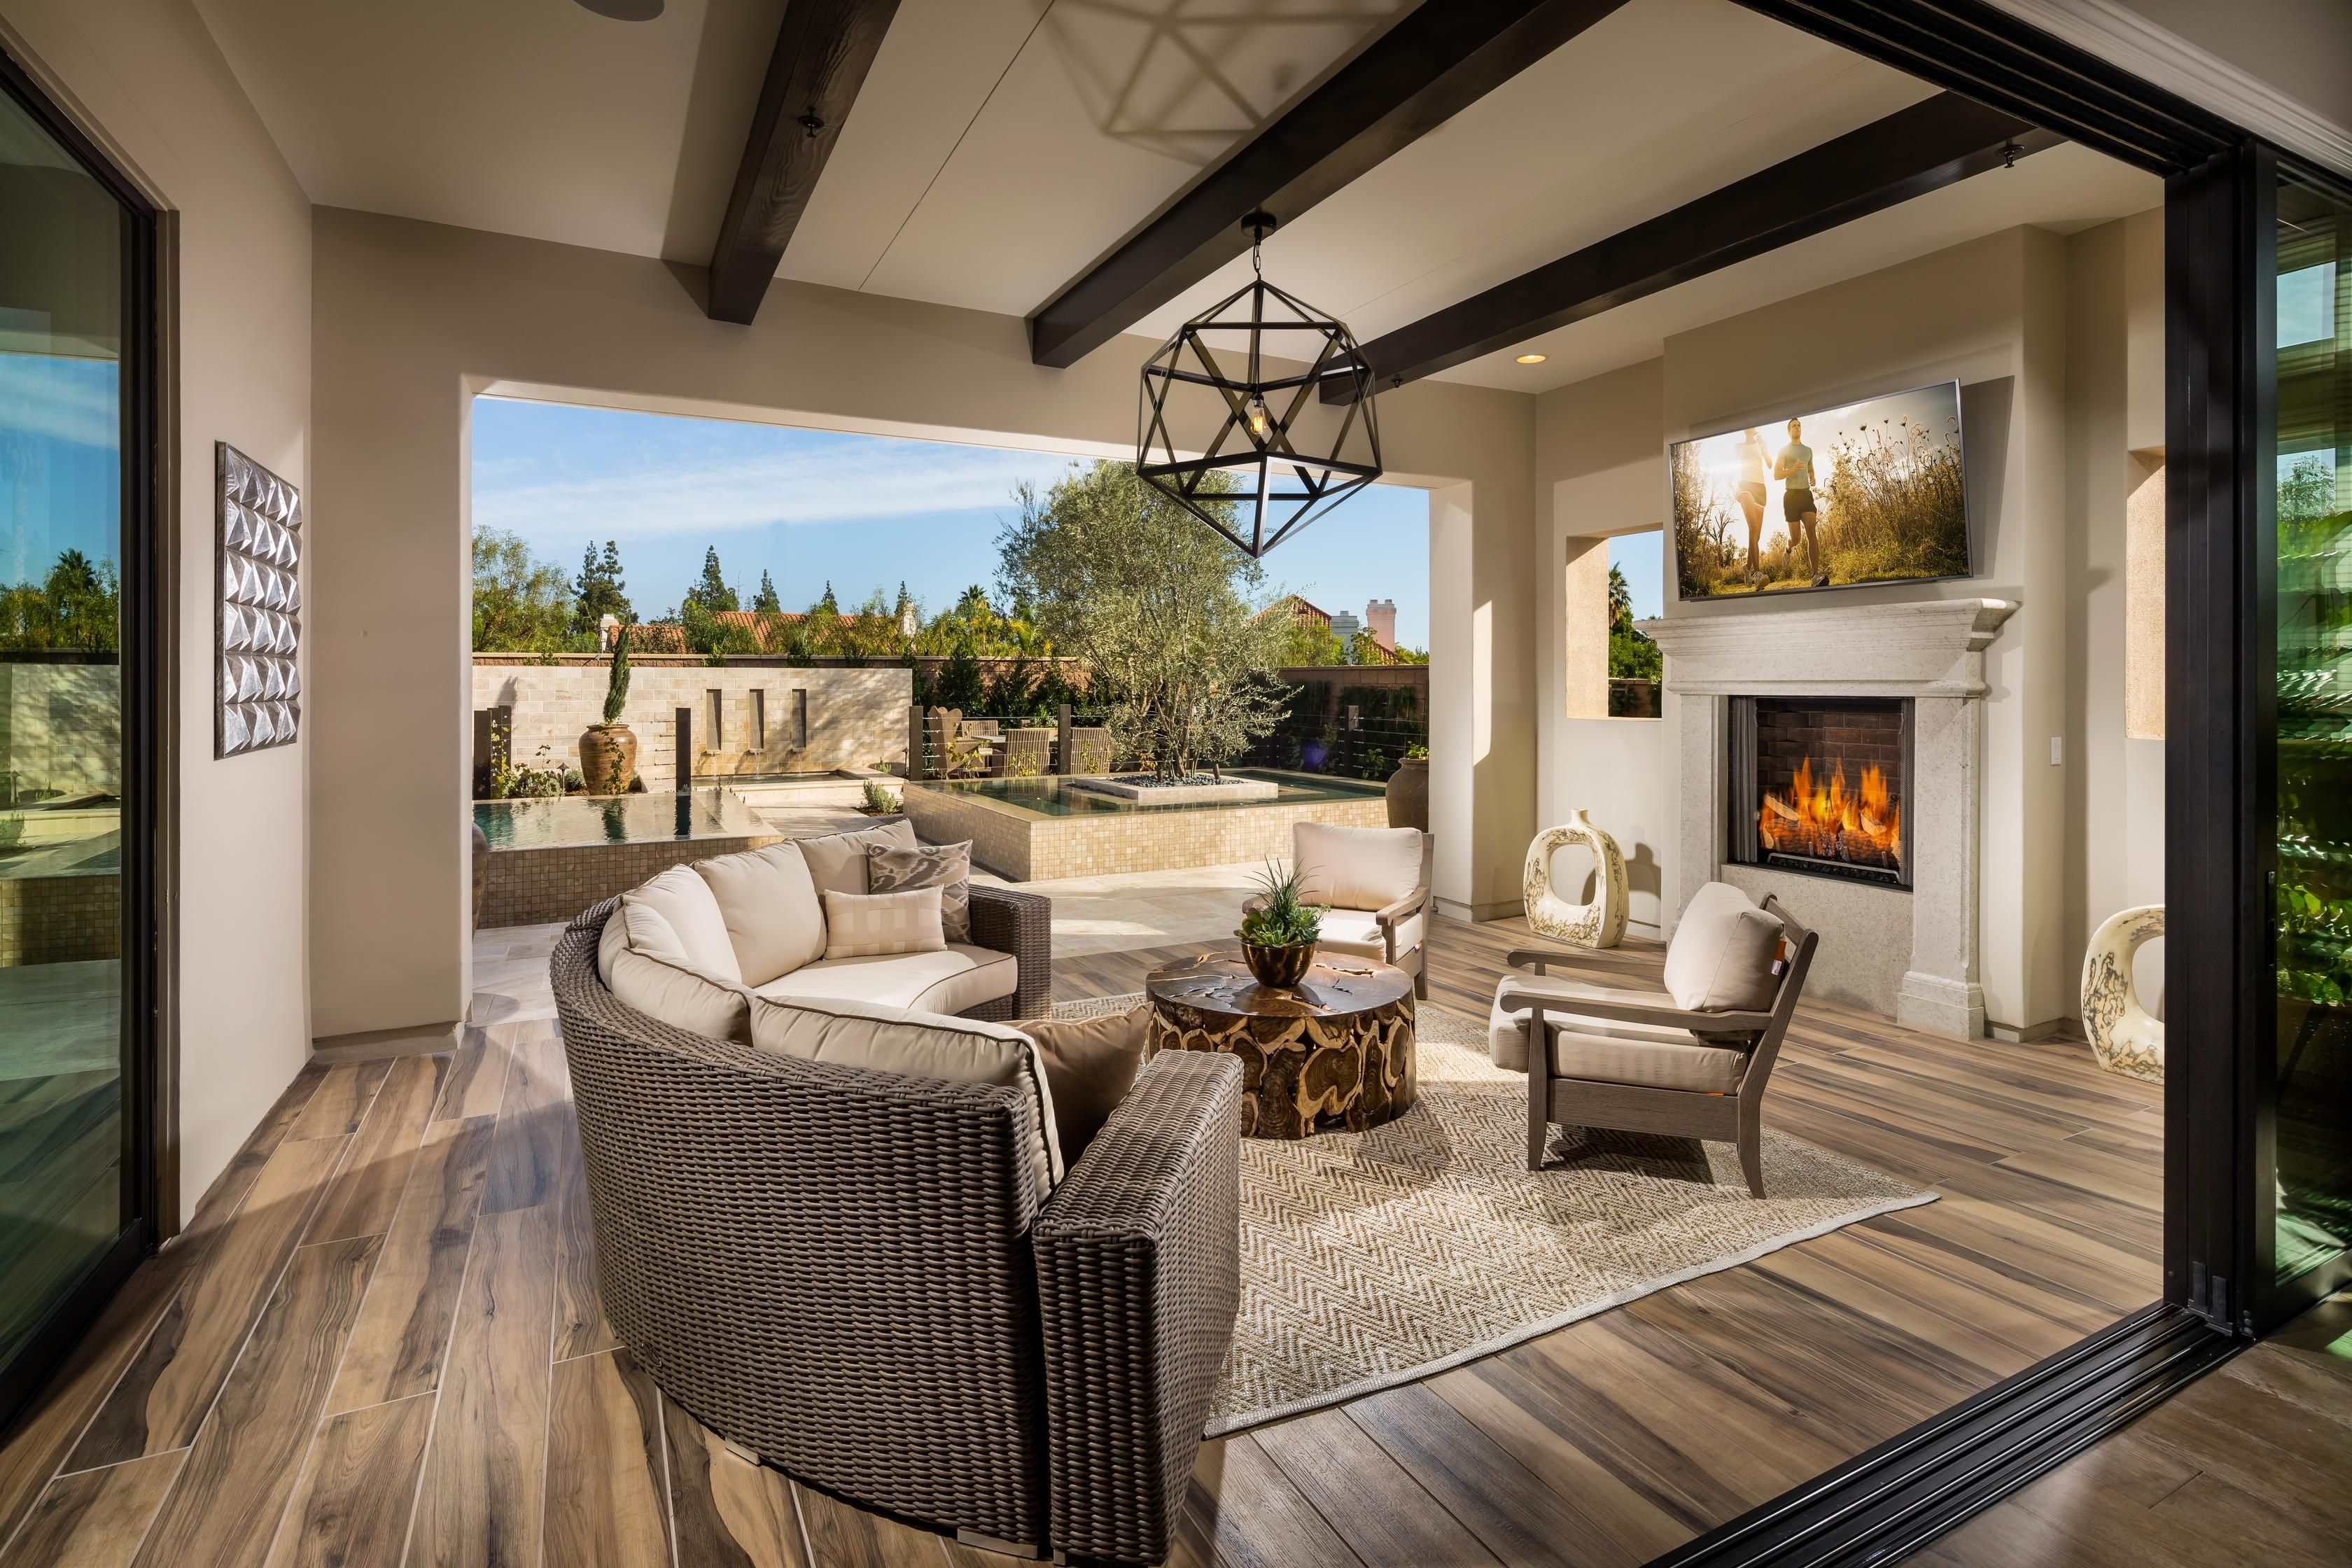 At John's home in Chatsworth, CA you will enjoy the spacious outdoor  living area created